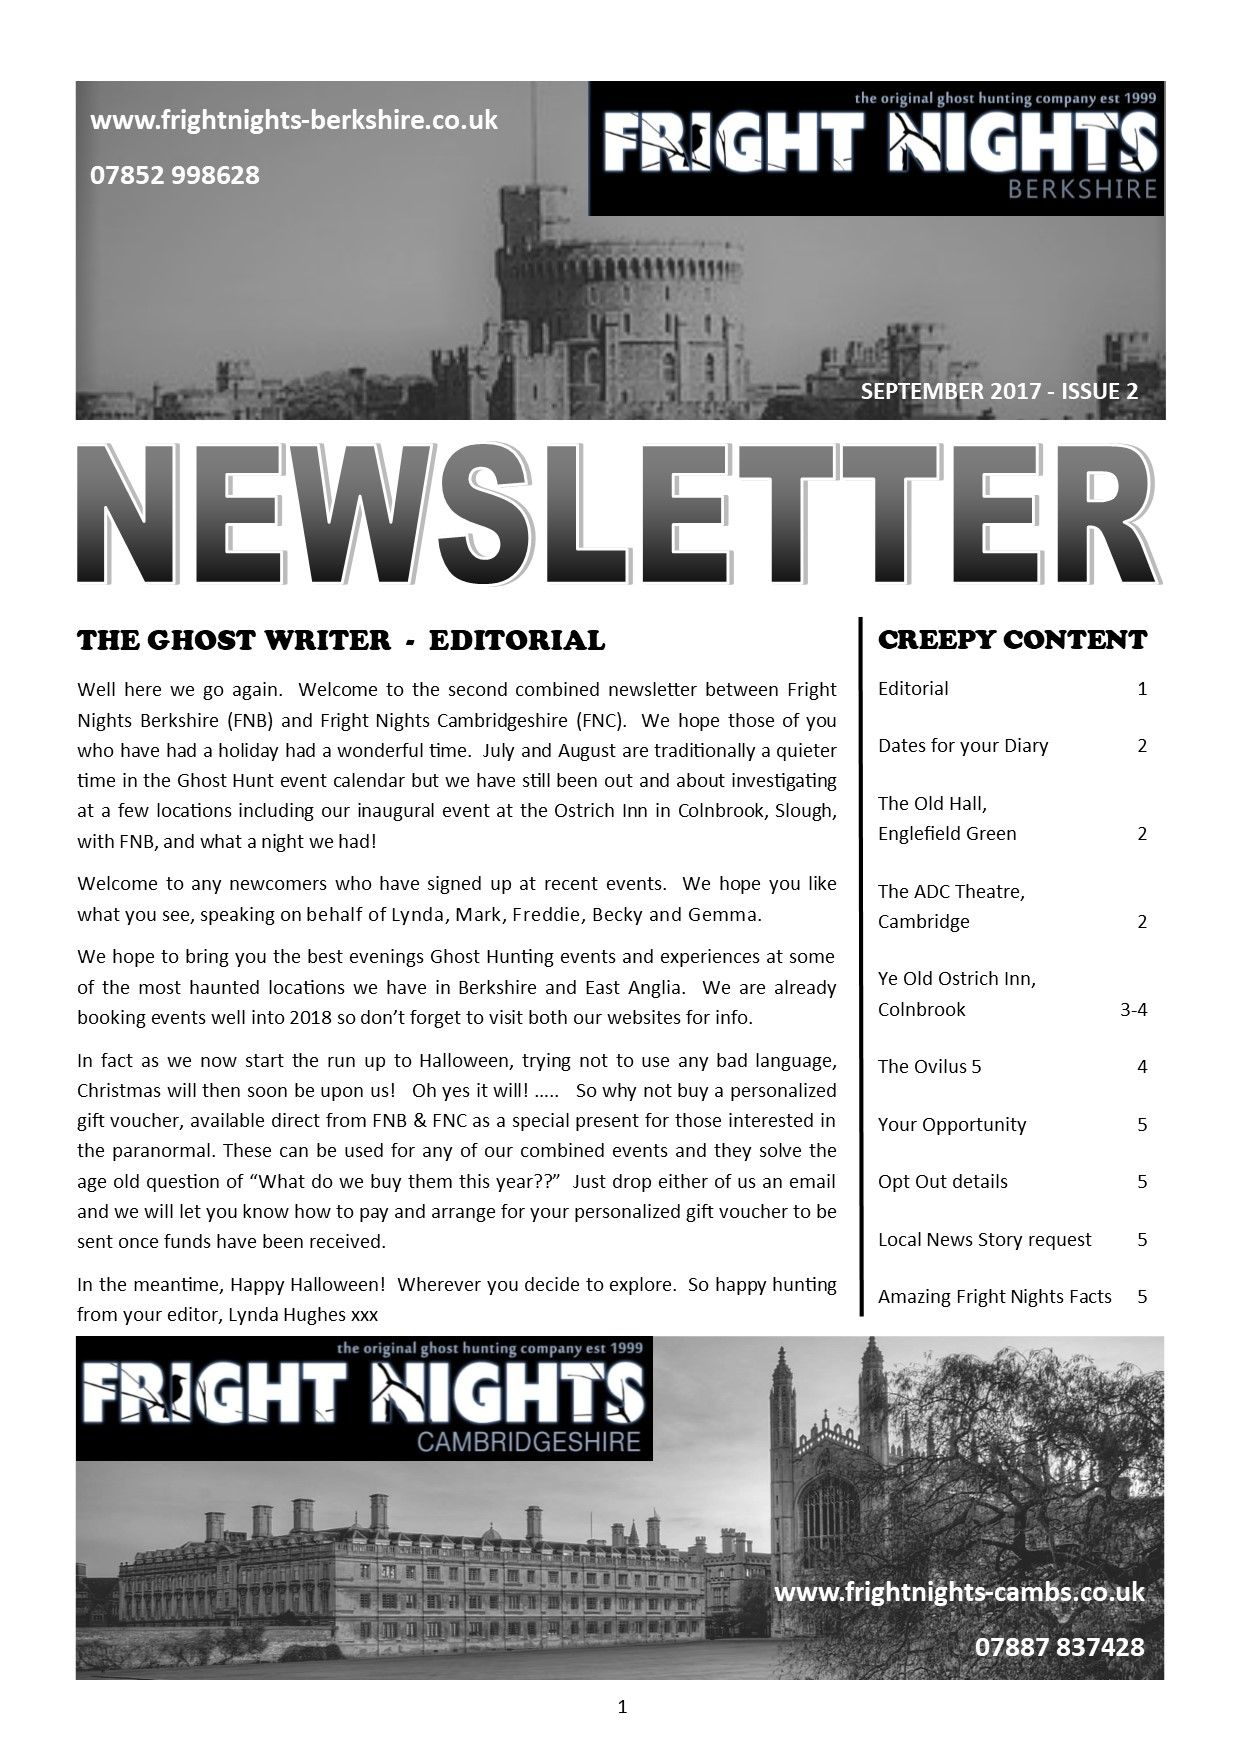 Fright Nights Berkshire News Letter Issue  September  If